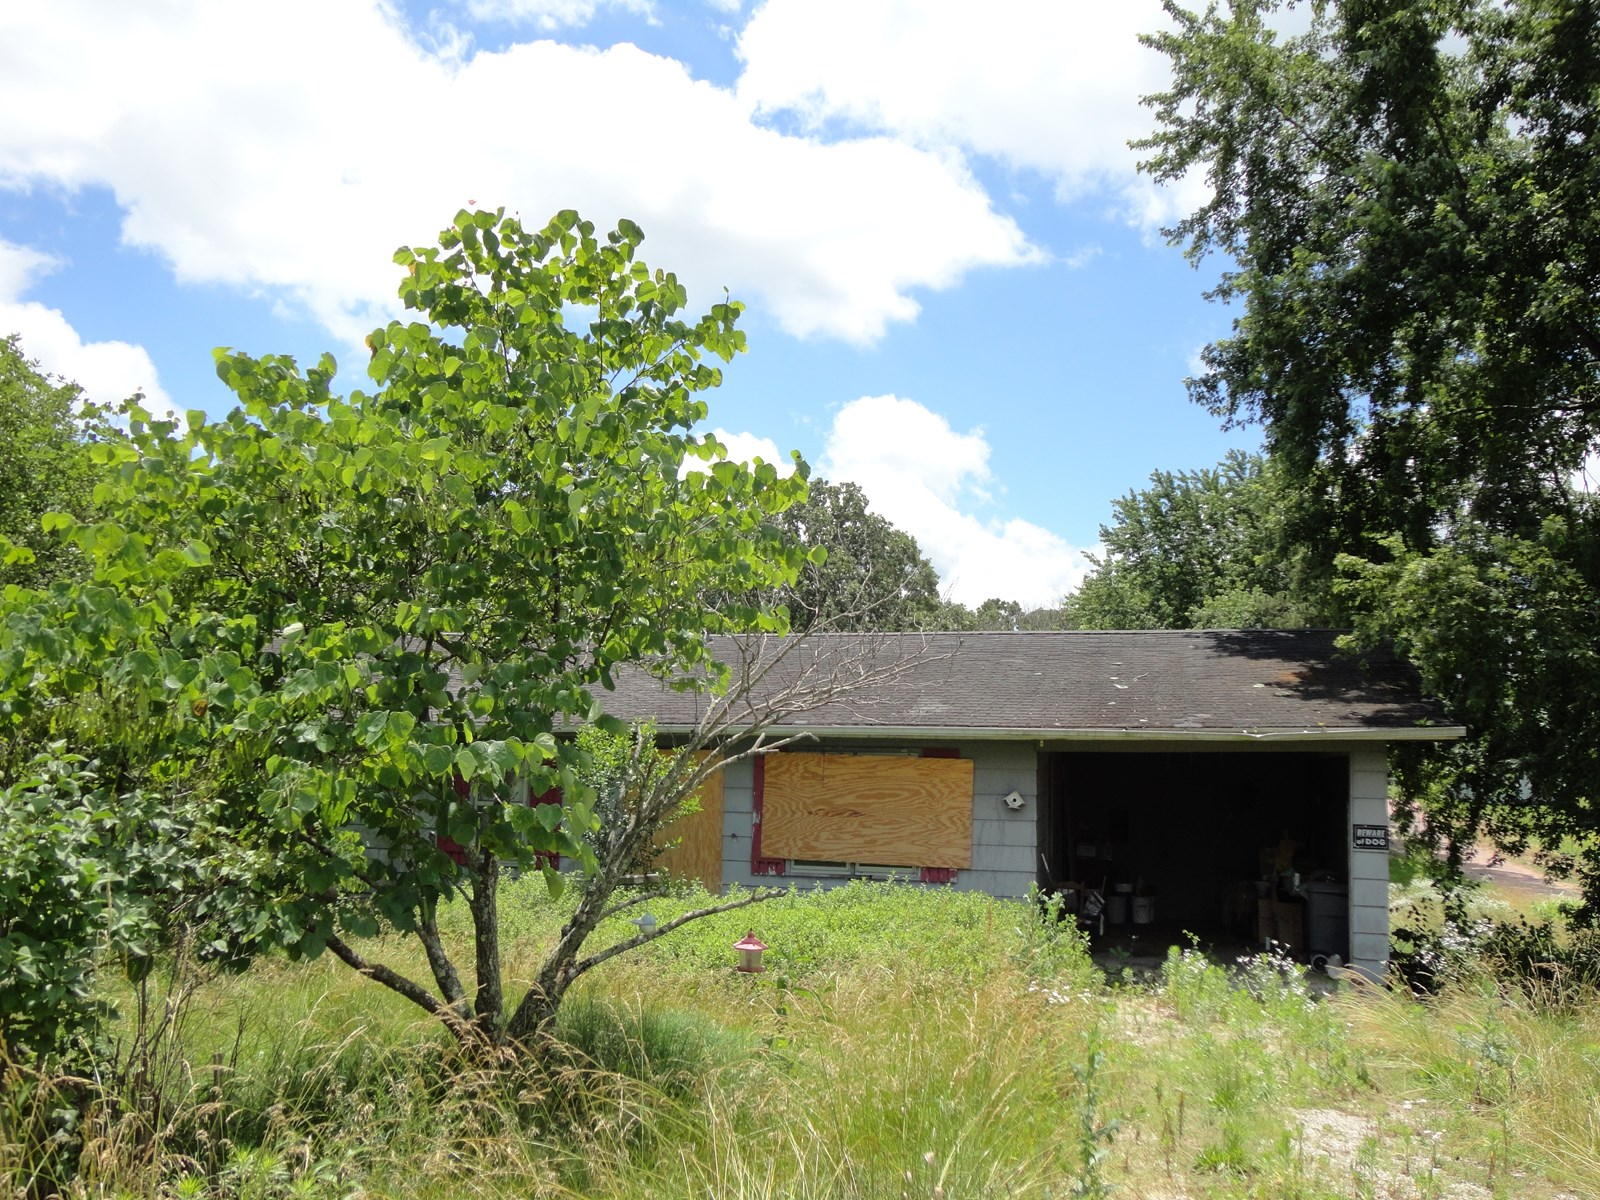 3 BR, 1 BA FIXER-UPPER HOME ON 100' X 150' CORNER LOT!